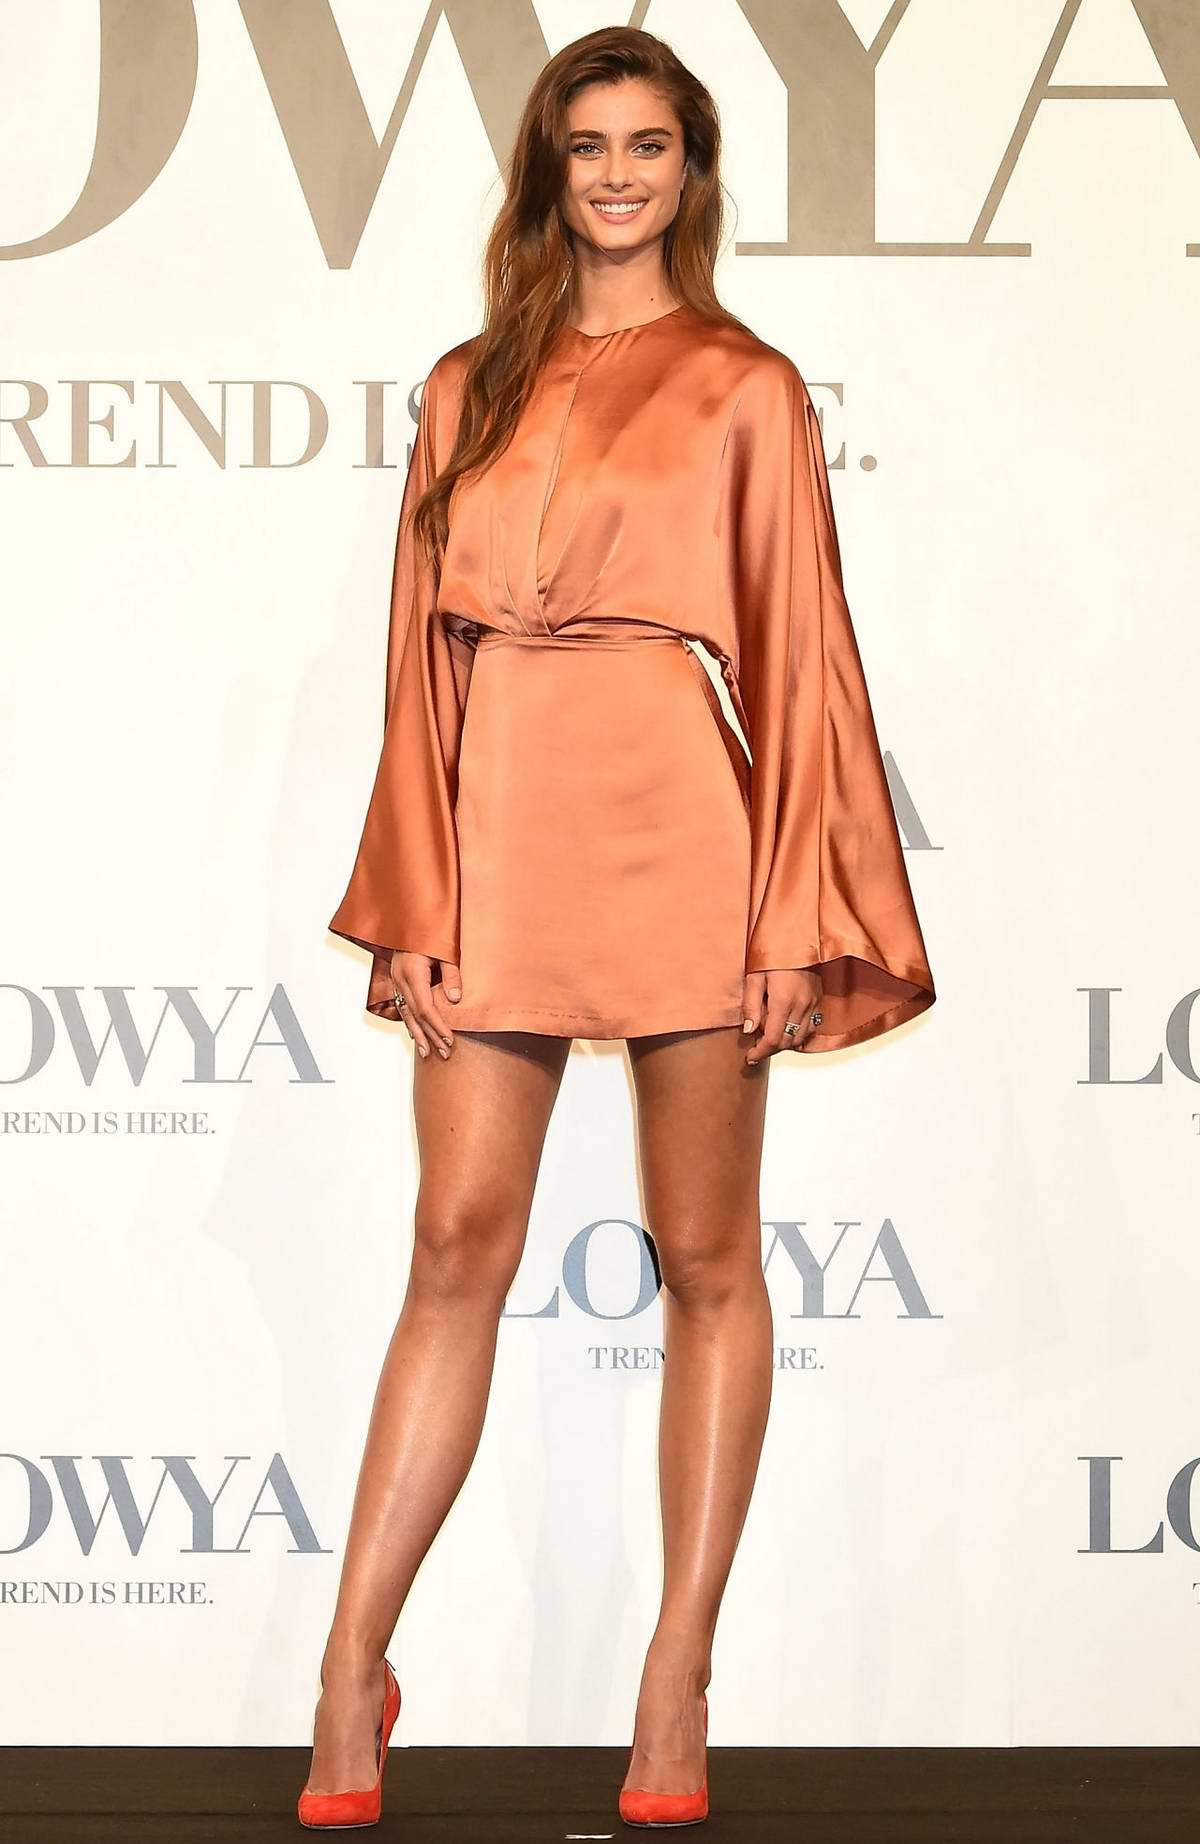 Taylor Hill attends the press conference for furniture and lifestyle brand 'Lowya' in Tokyo, Japan